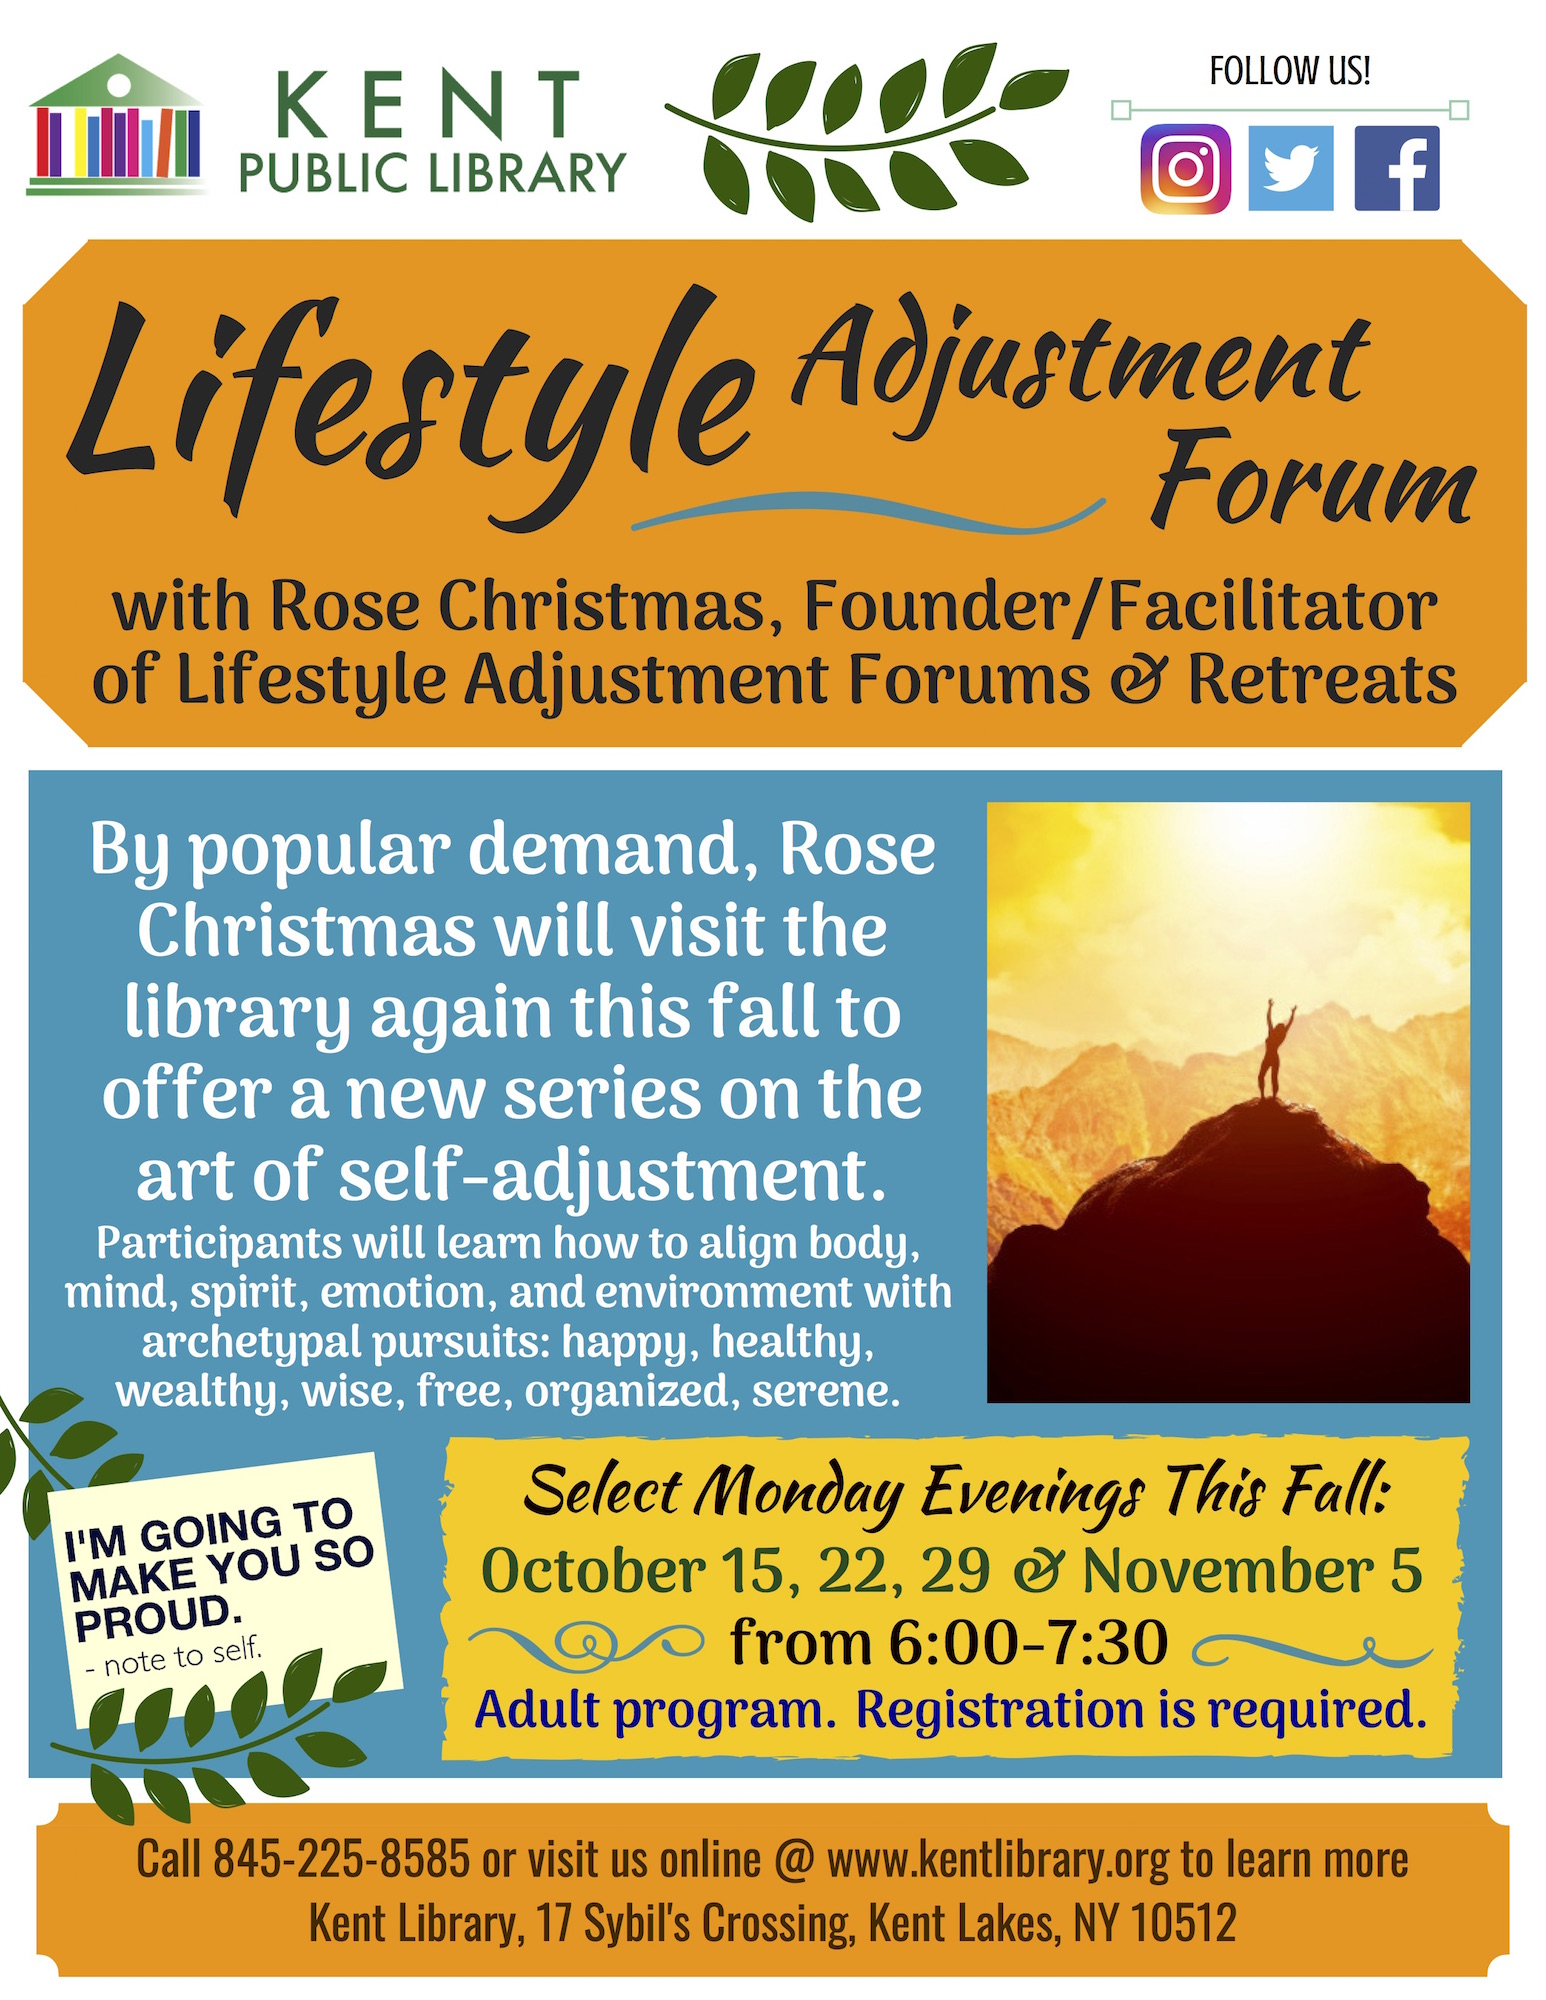 by popular demand rose christmas founderfacilitator of lifestyle adjustment forums retreats will visit the kent library again this fall to offer a new - Christmas Forum